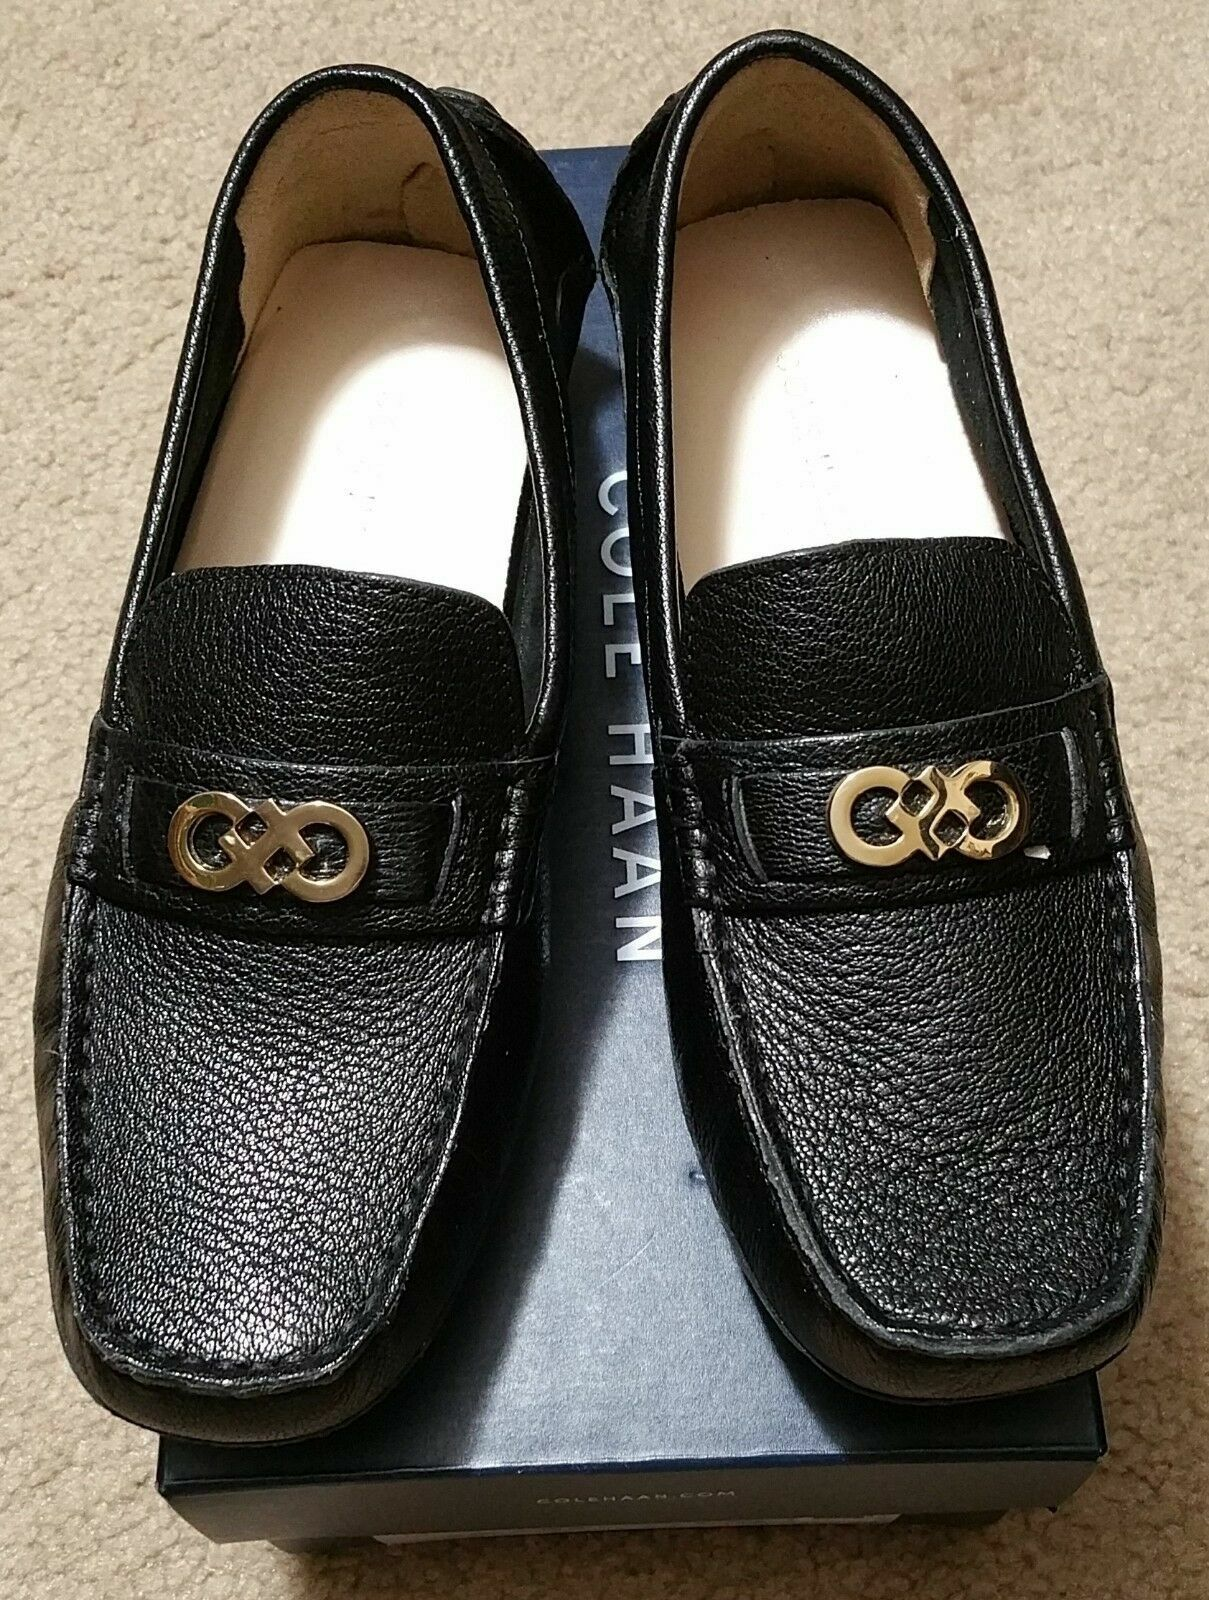 NEW Cole Haan Shelby CH Logo II Black Leather Loafers - Size 5.5, Medium Width